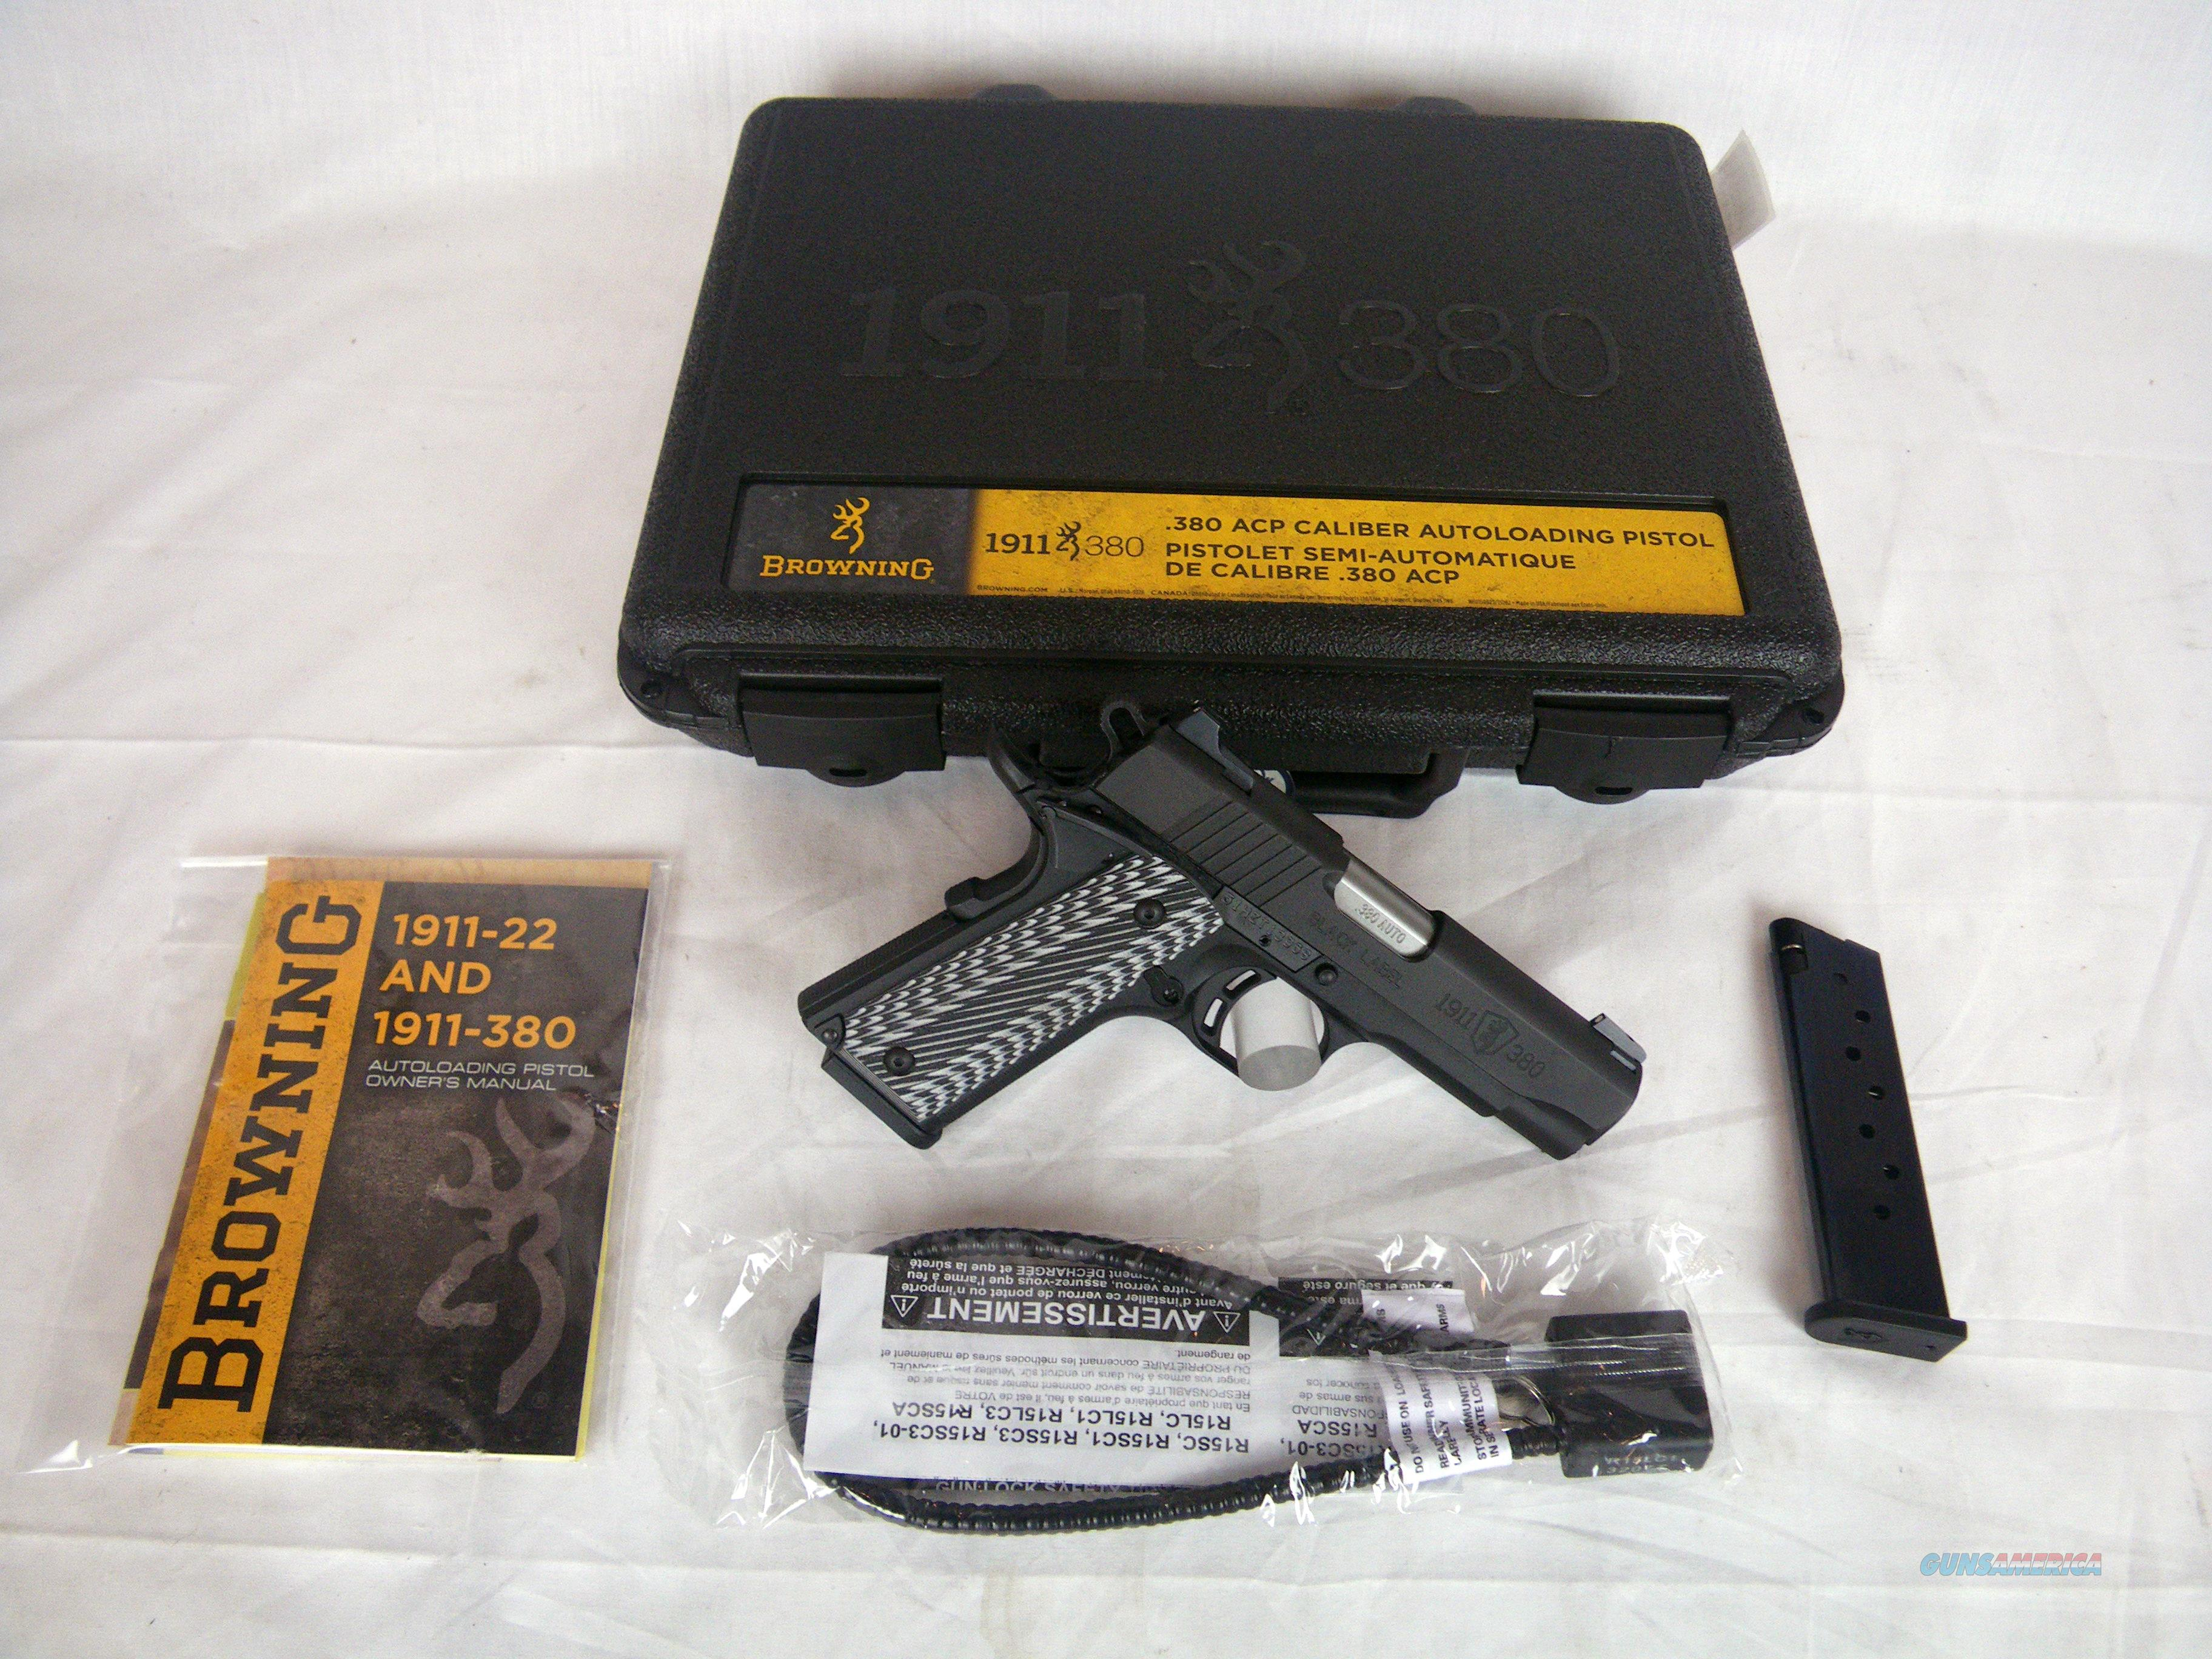 Browning 1911-380 Black Label Pro Compact 380 ACP #051908492  Guns > Pistols > Browning Pistols > Other Autos